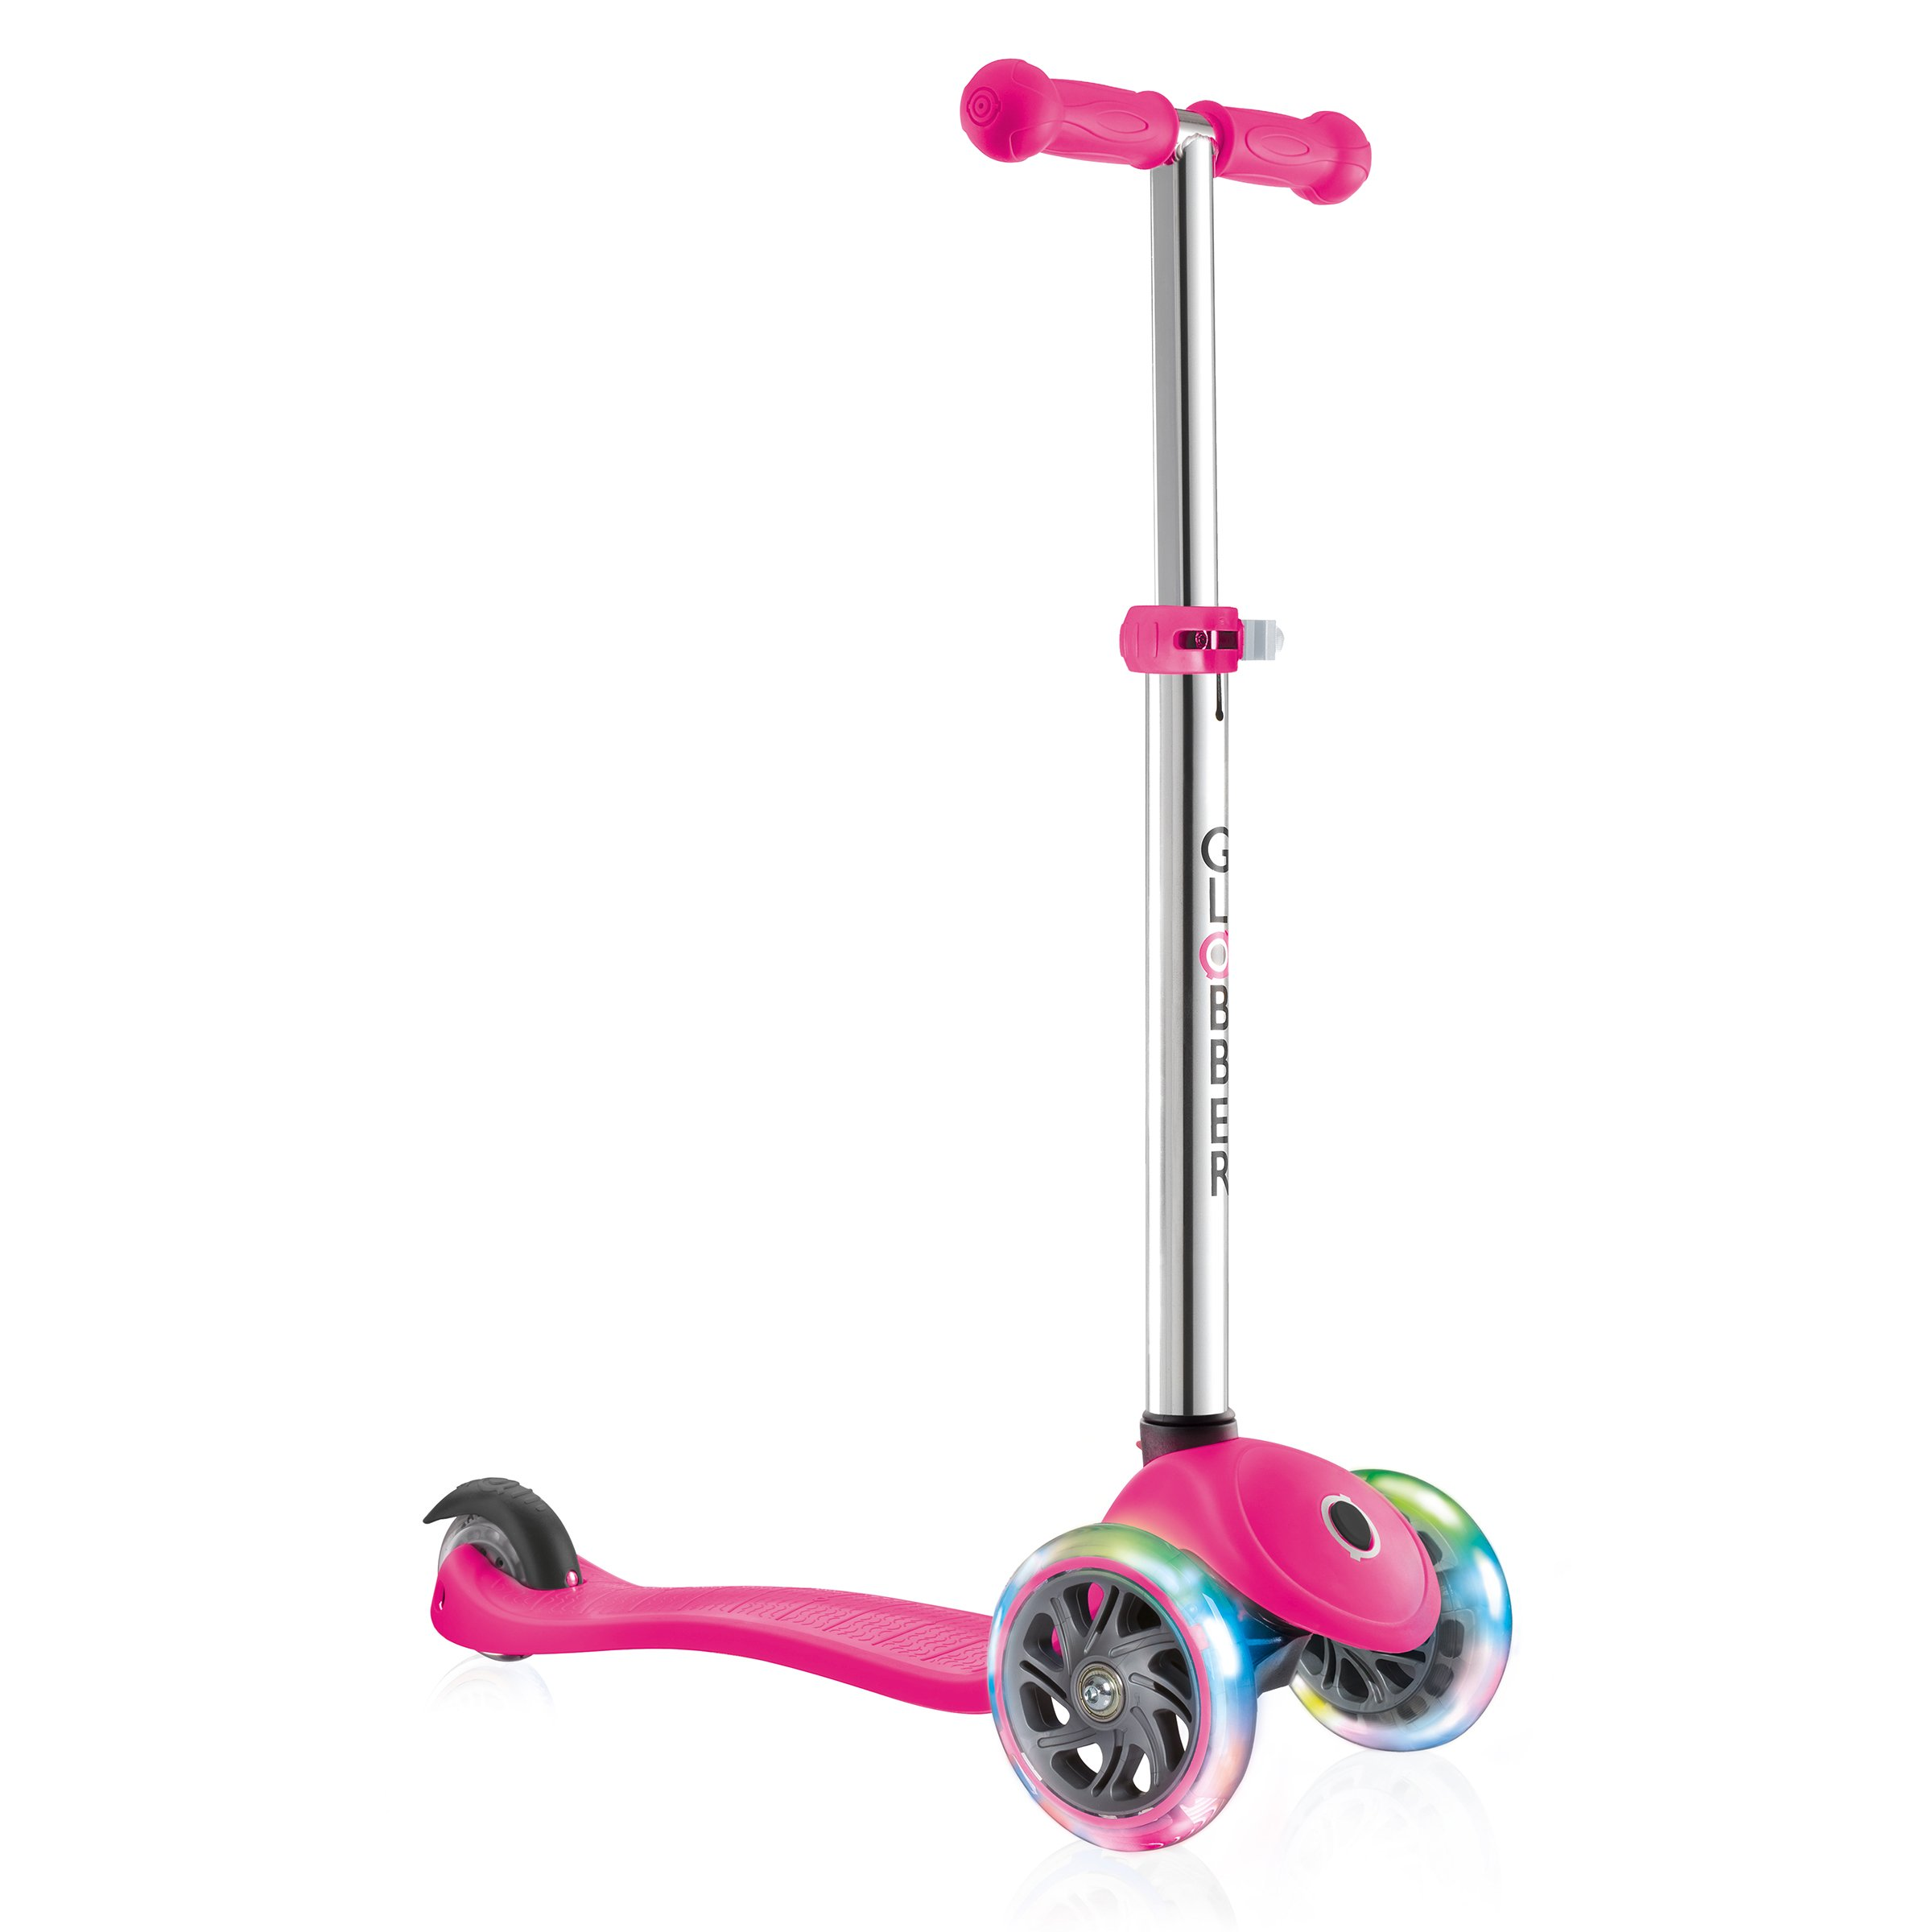 Globber 3 Wheel Adjustable Height Scooter with LED Light Up Wheels (Pink/Chrome)